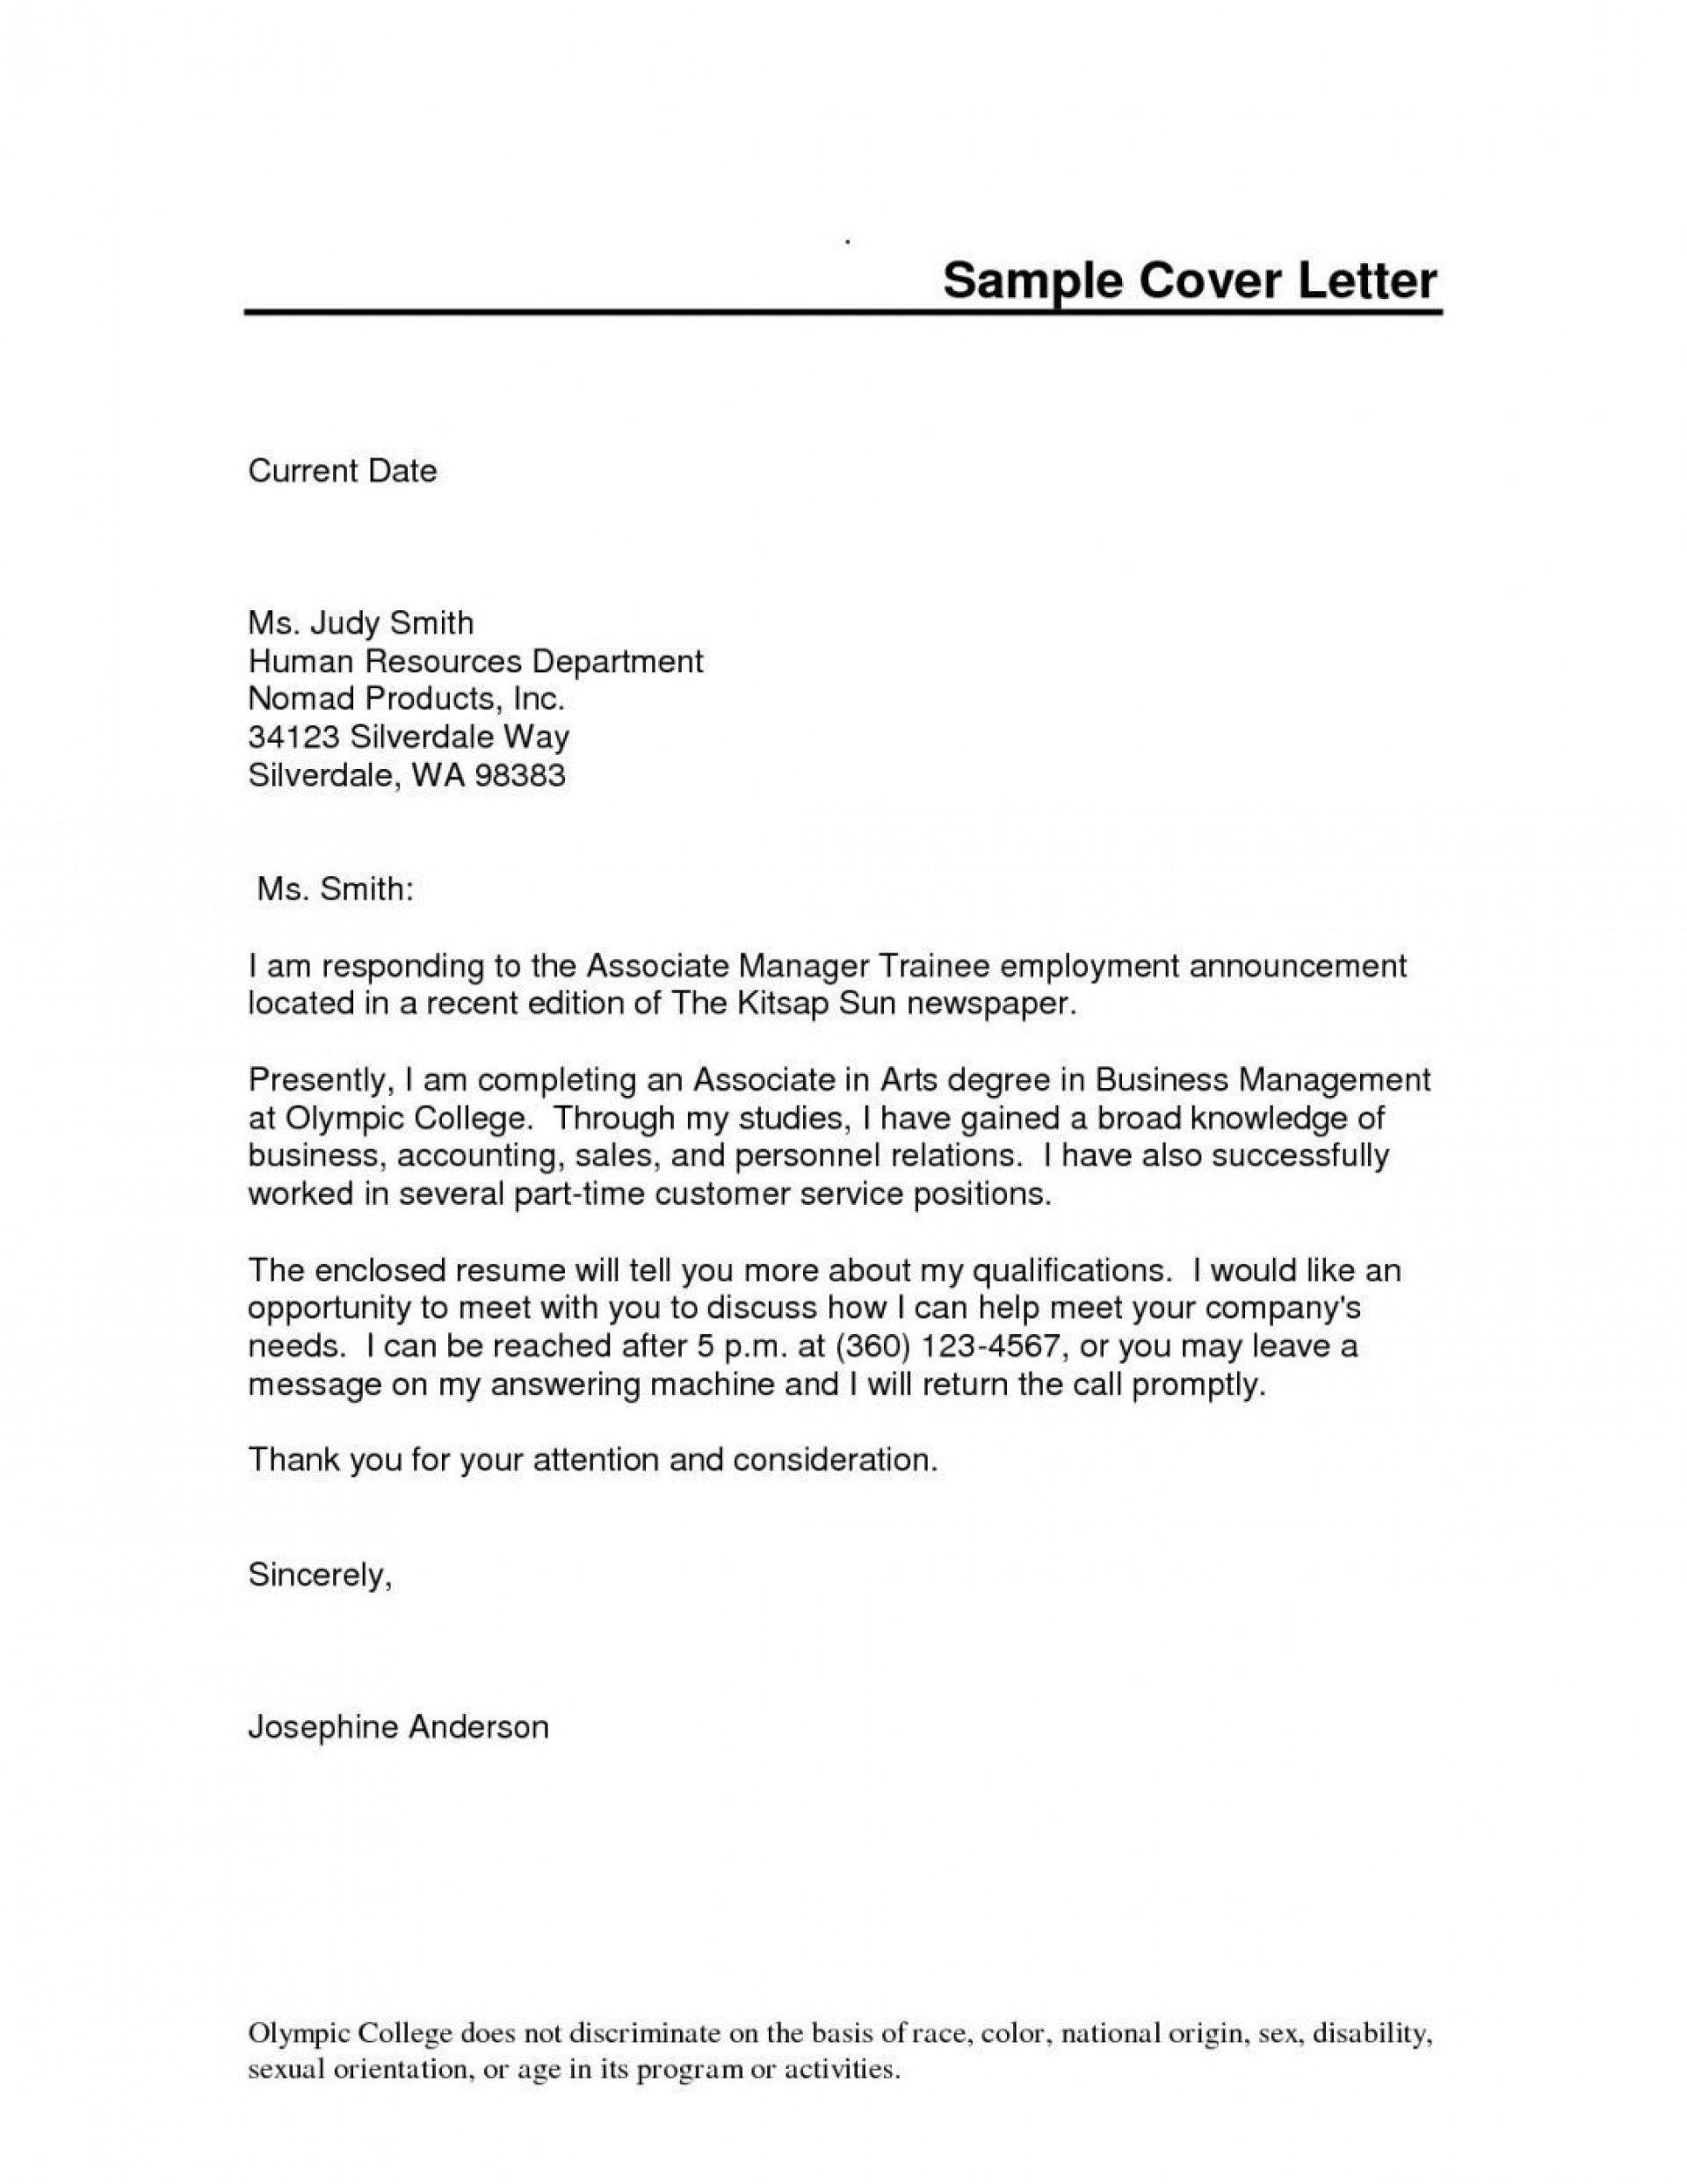 000 Fascinating Letter Template Microsoft Word Design  Naval Format 2010 20071920